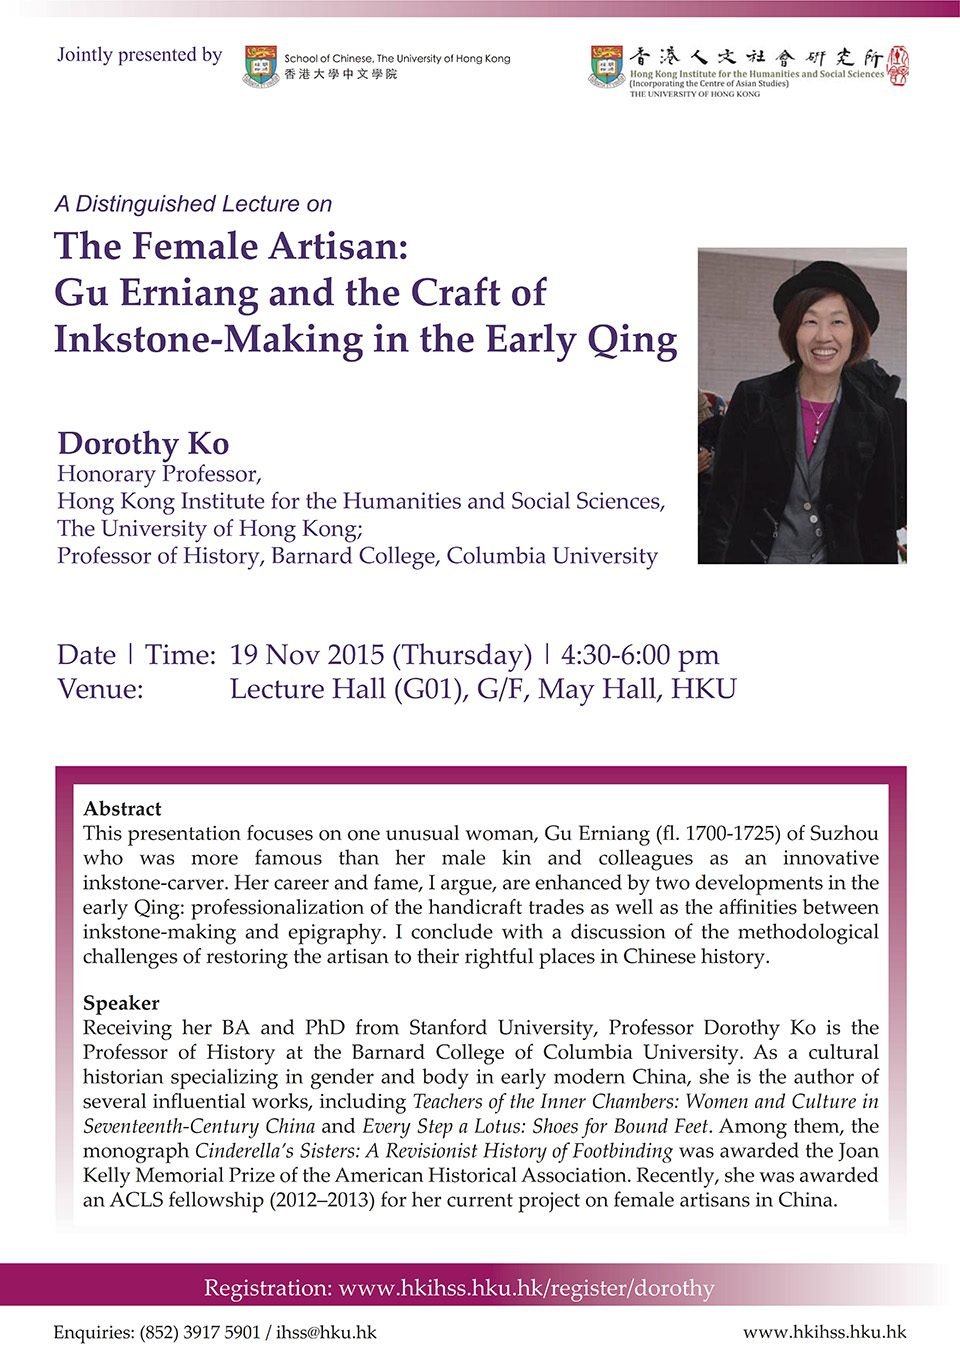 "Distinguished Lecture on ""The Female Artisan: Gu Erniang and the Craft of Inkstone-Making in the Early Qing"" by Professor Dorothy Ko (November 19, 2015)"